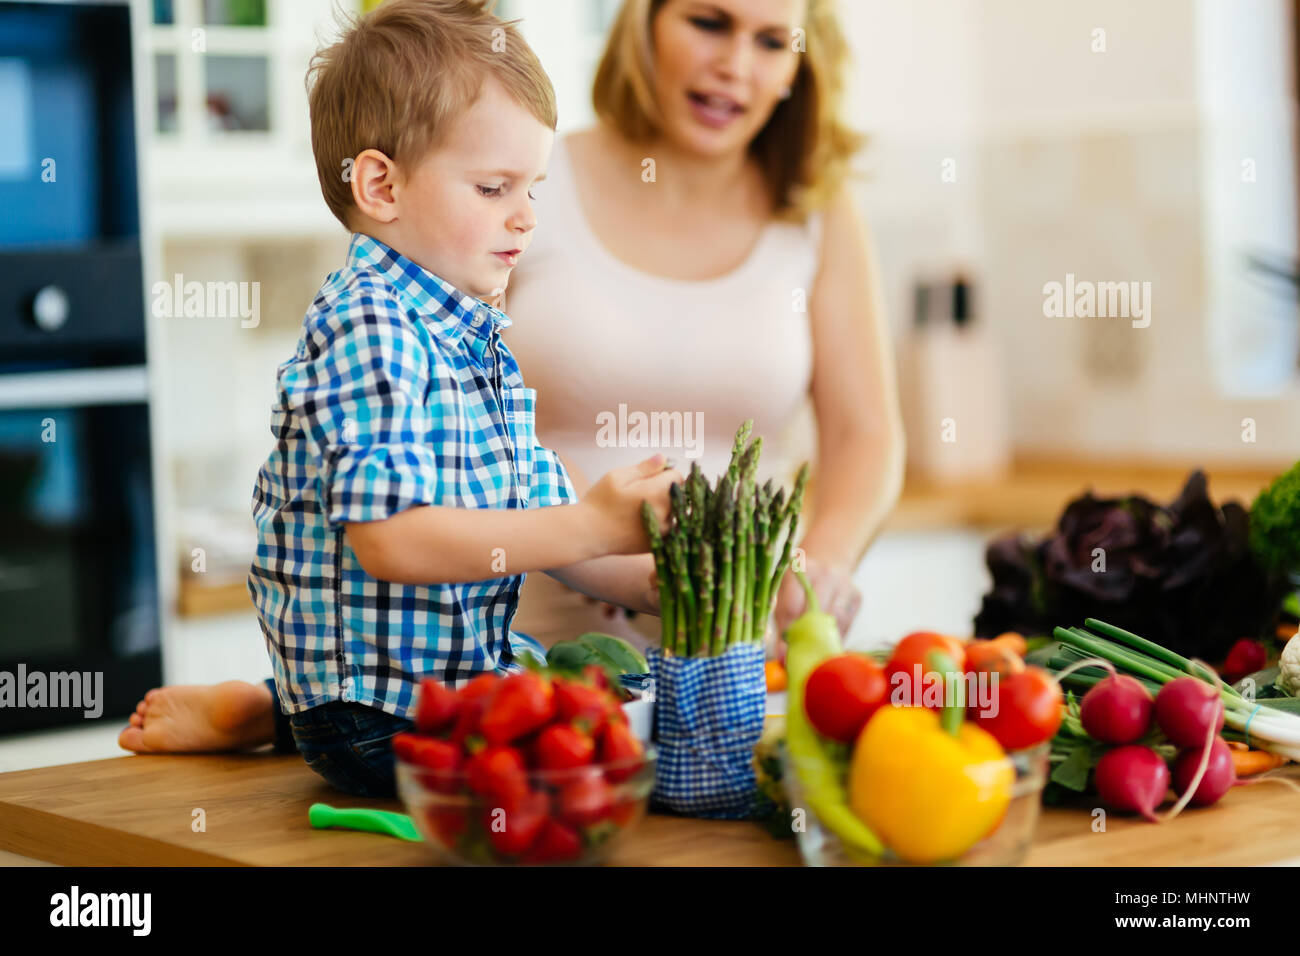 Mother and child preparing lunch - Stock Image